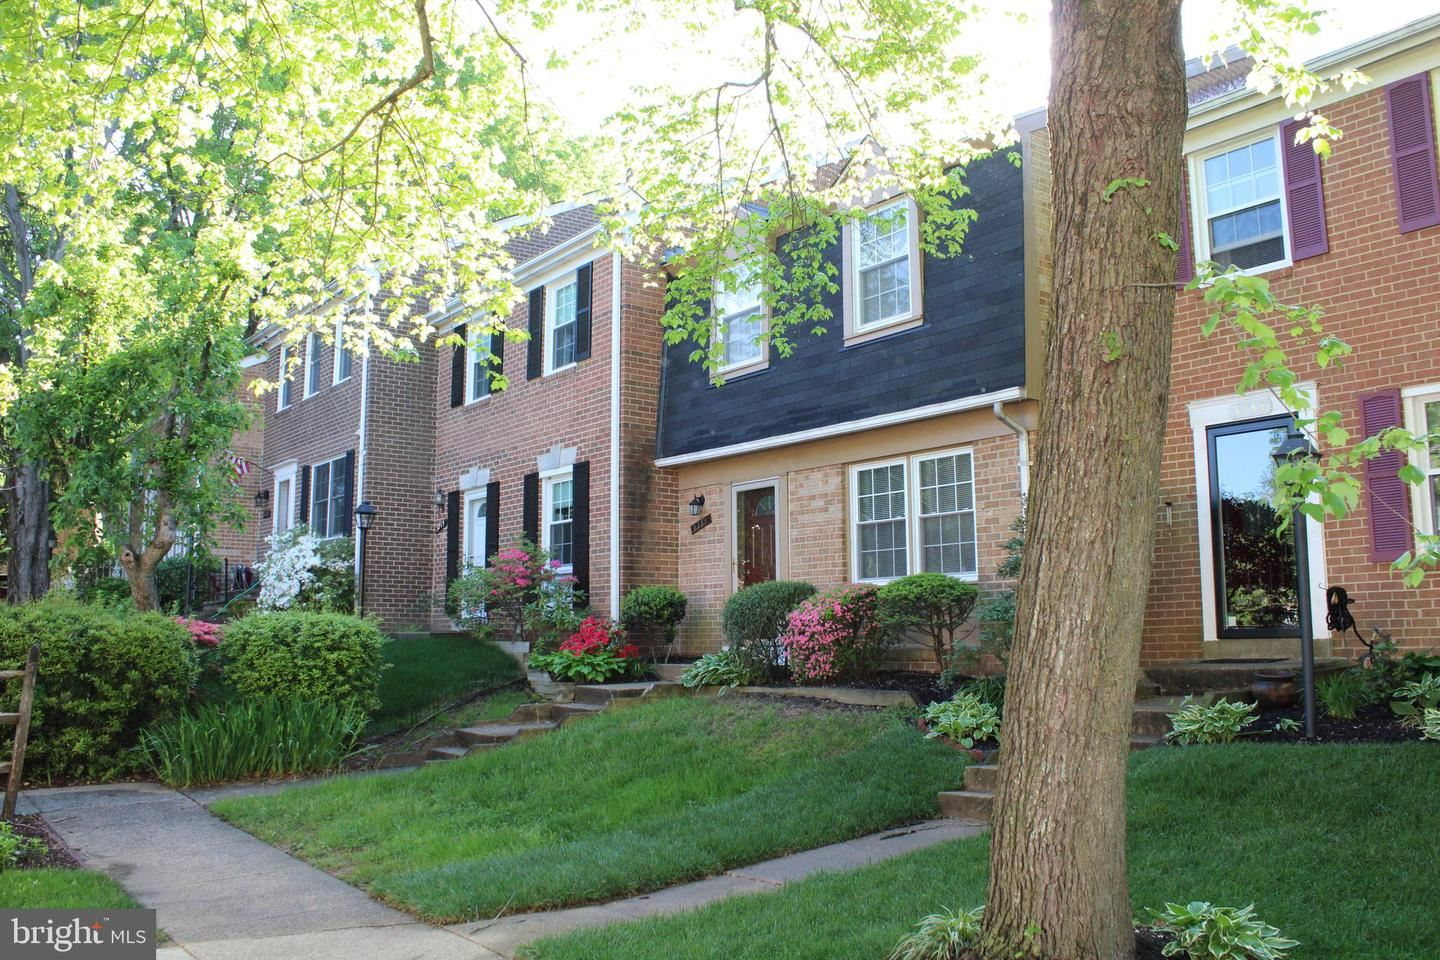 5751 FLAGFLOWER PL, Columbia, MD 21045 - MLS#: MDHW294184